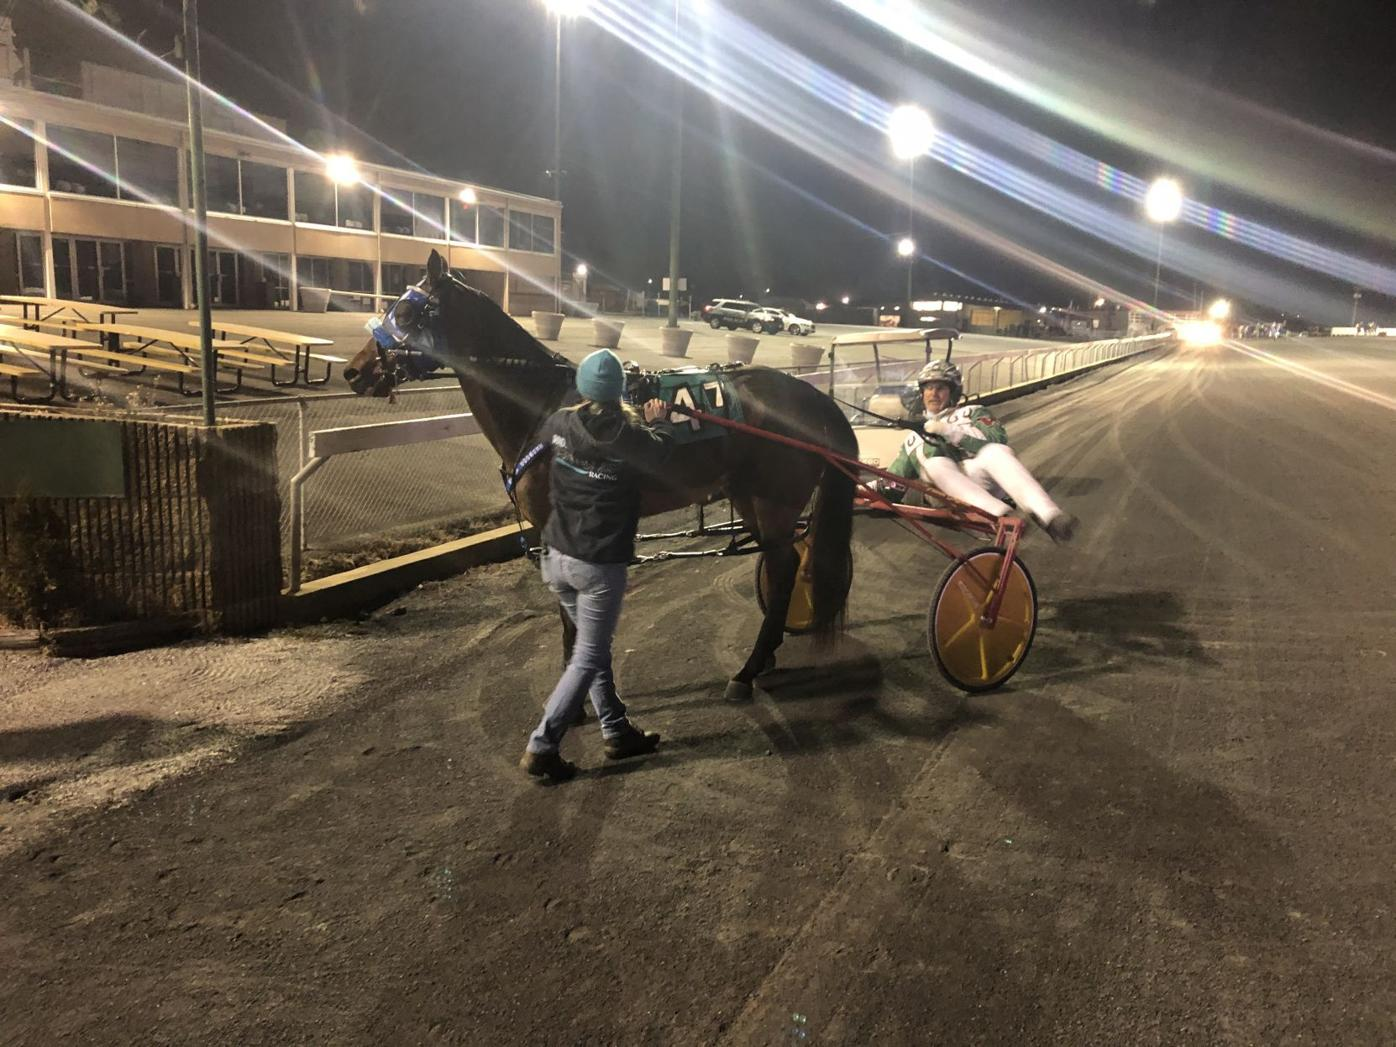 Rosecroft offers solid Sunday card